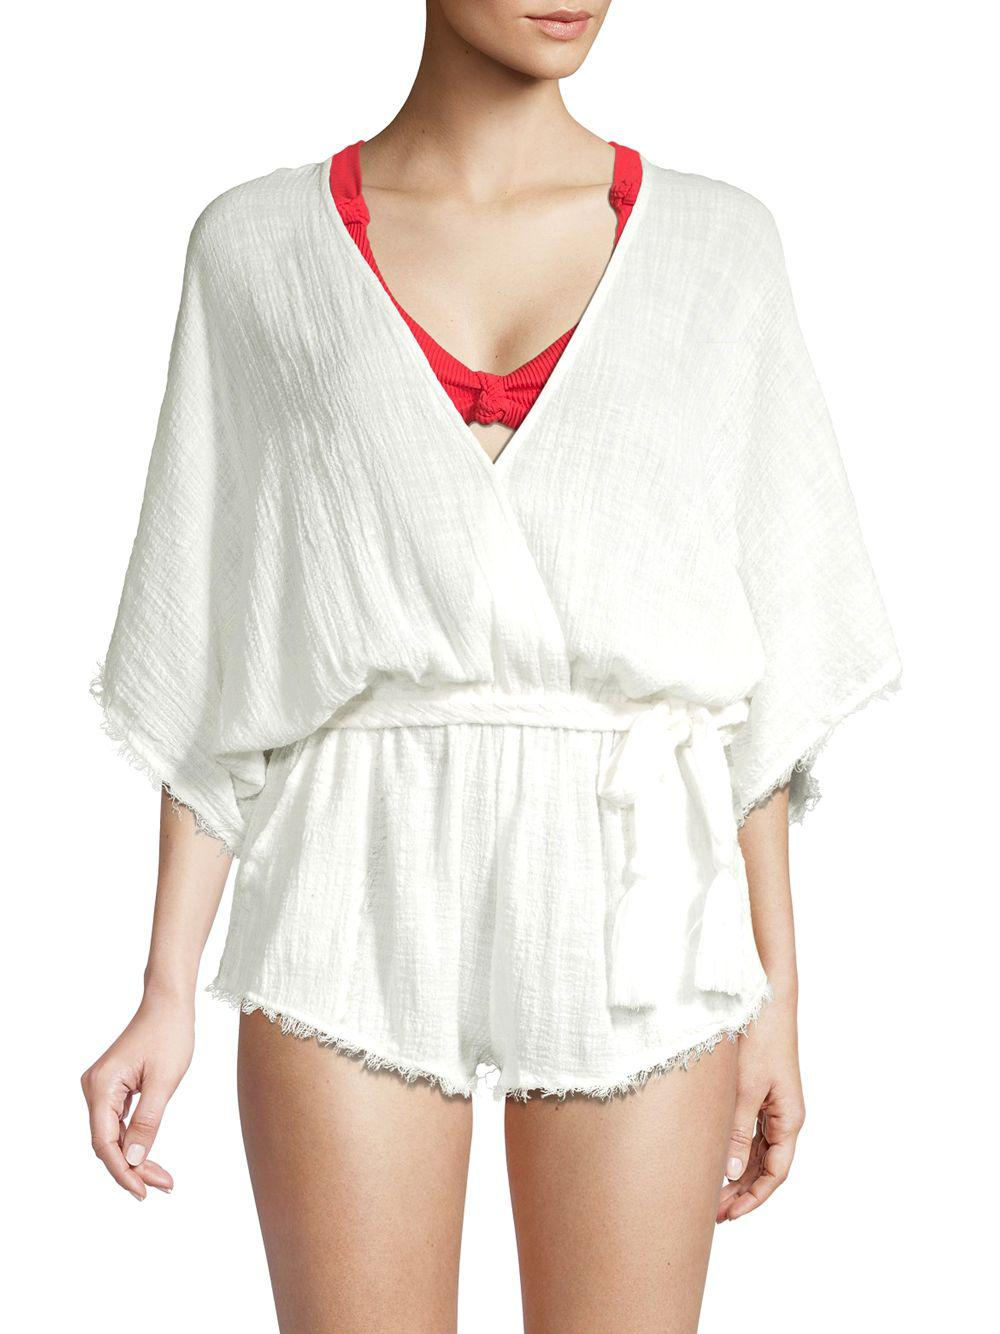 530ec6b9f3df Lyst - Dolce Vita Cotton Frayed Cover-up Romper in White